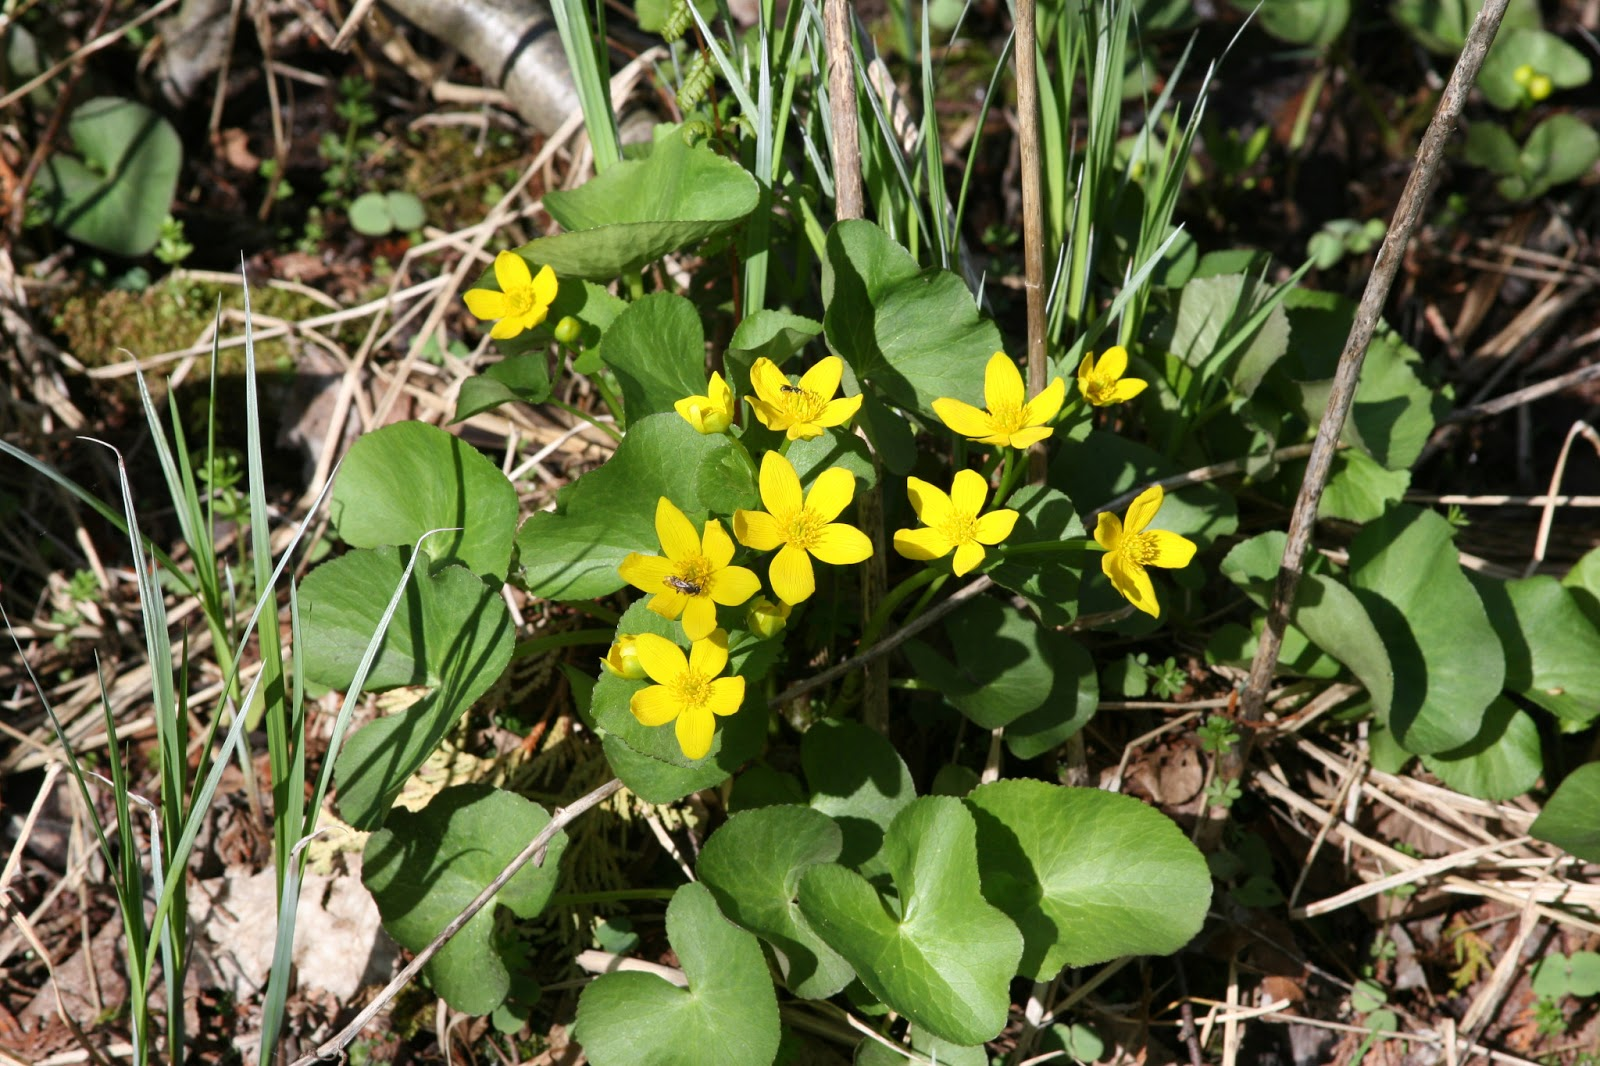 Marsh Marigold Is An Herbaceous Plant With Yellow Flowers And Glossy Green Heart Or Kidney Shaped Leaves It Forms Low Mounds From 8 Inches To 24